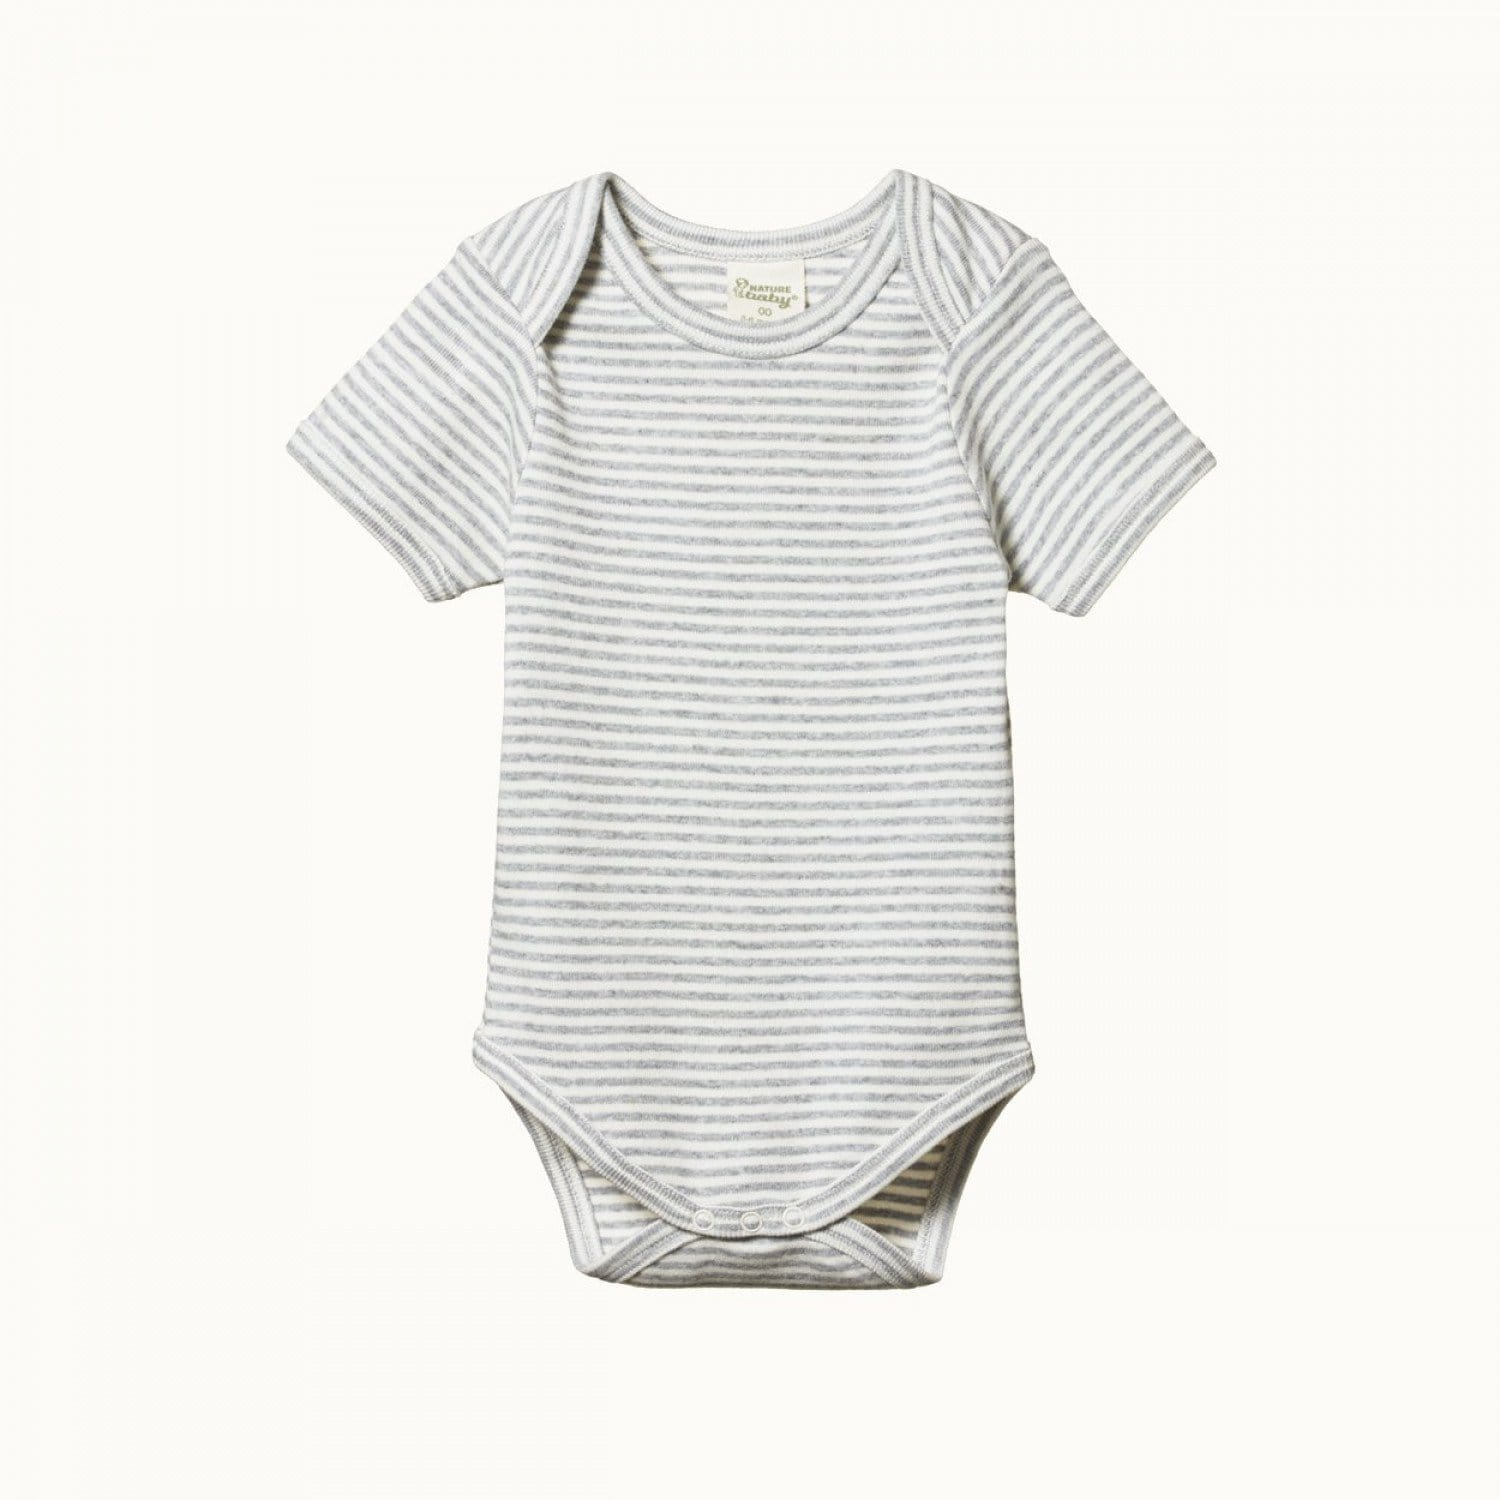 Nature Baby Organic Cotton Short Sleeve Onesie (Multiple Variants) - Naked Baby Eco Boutique